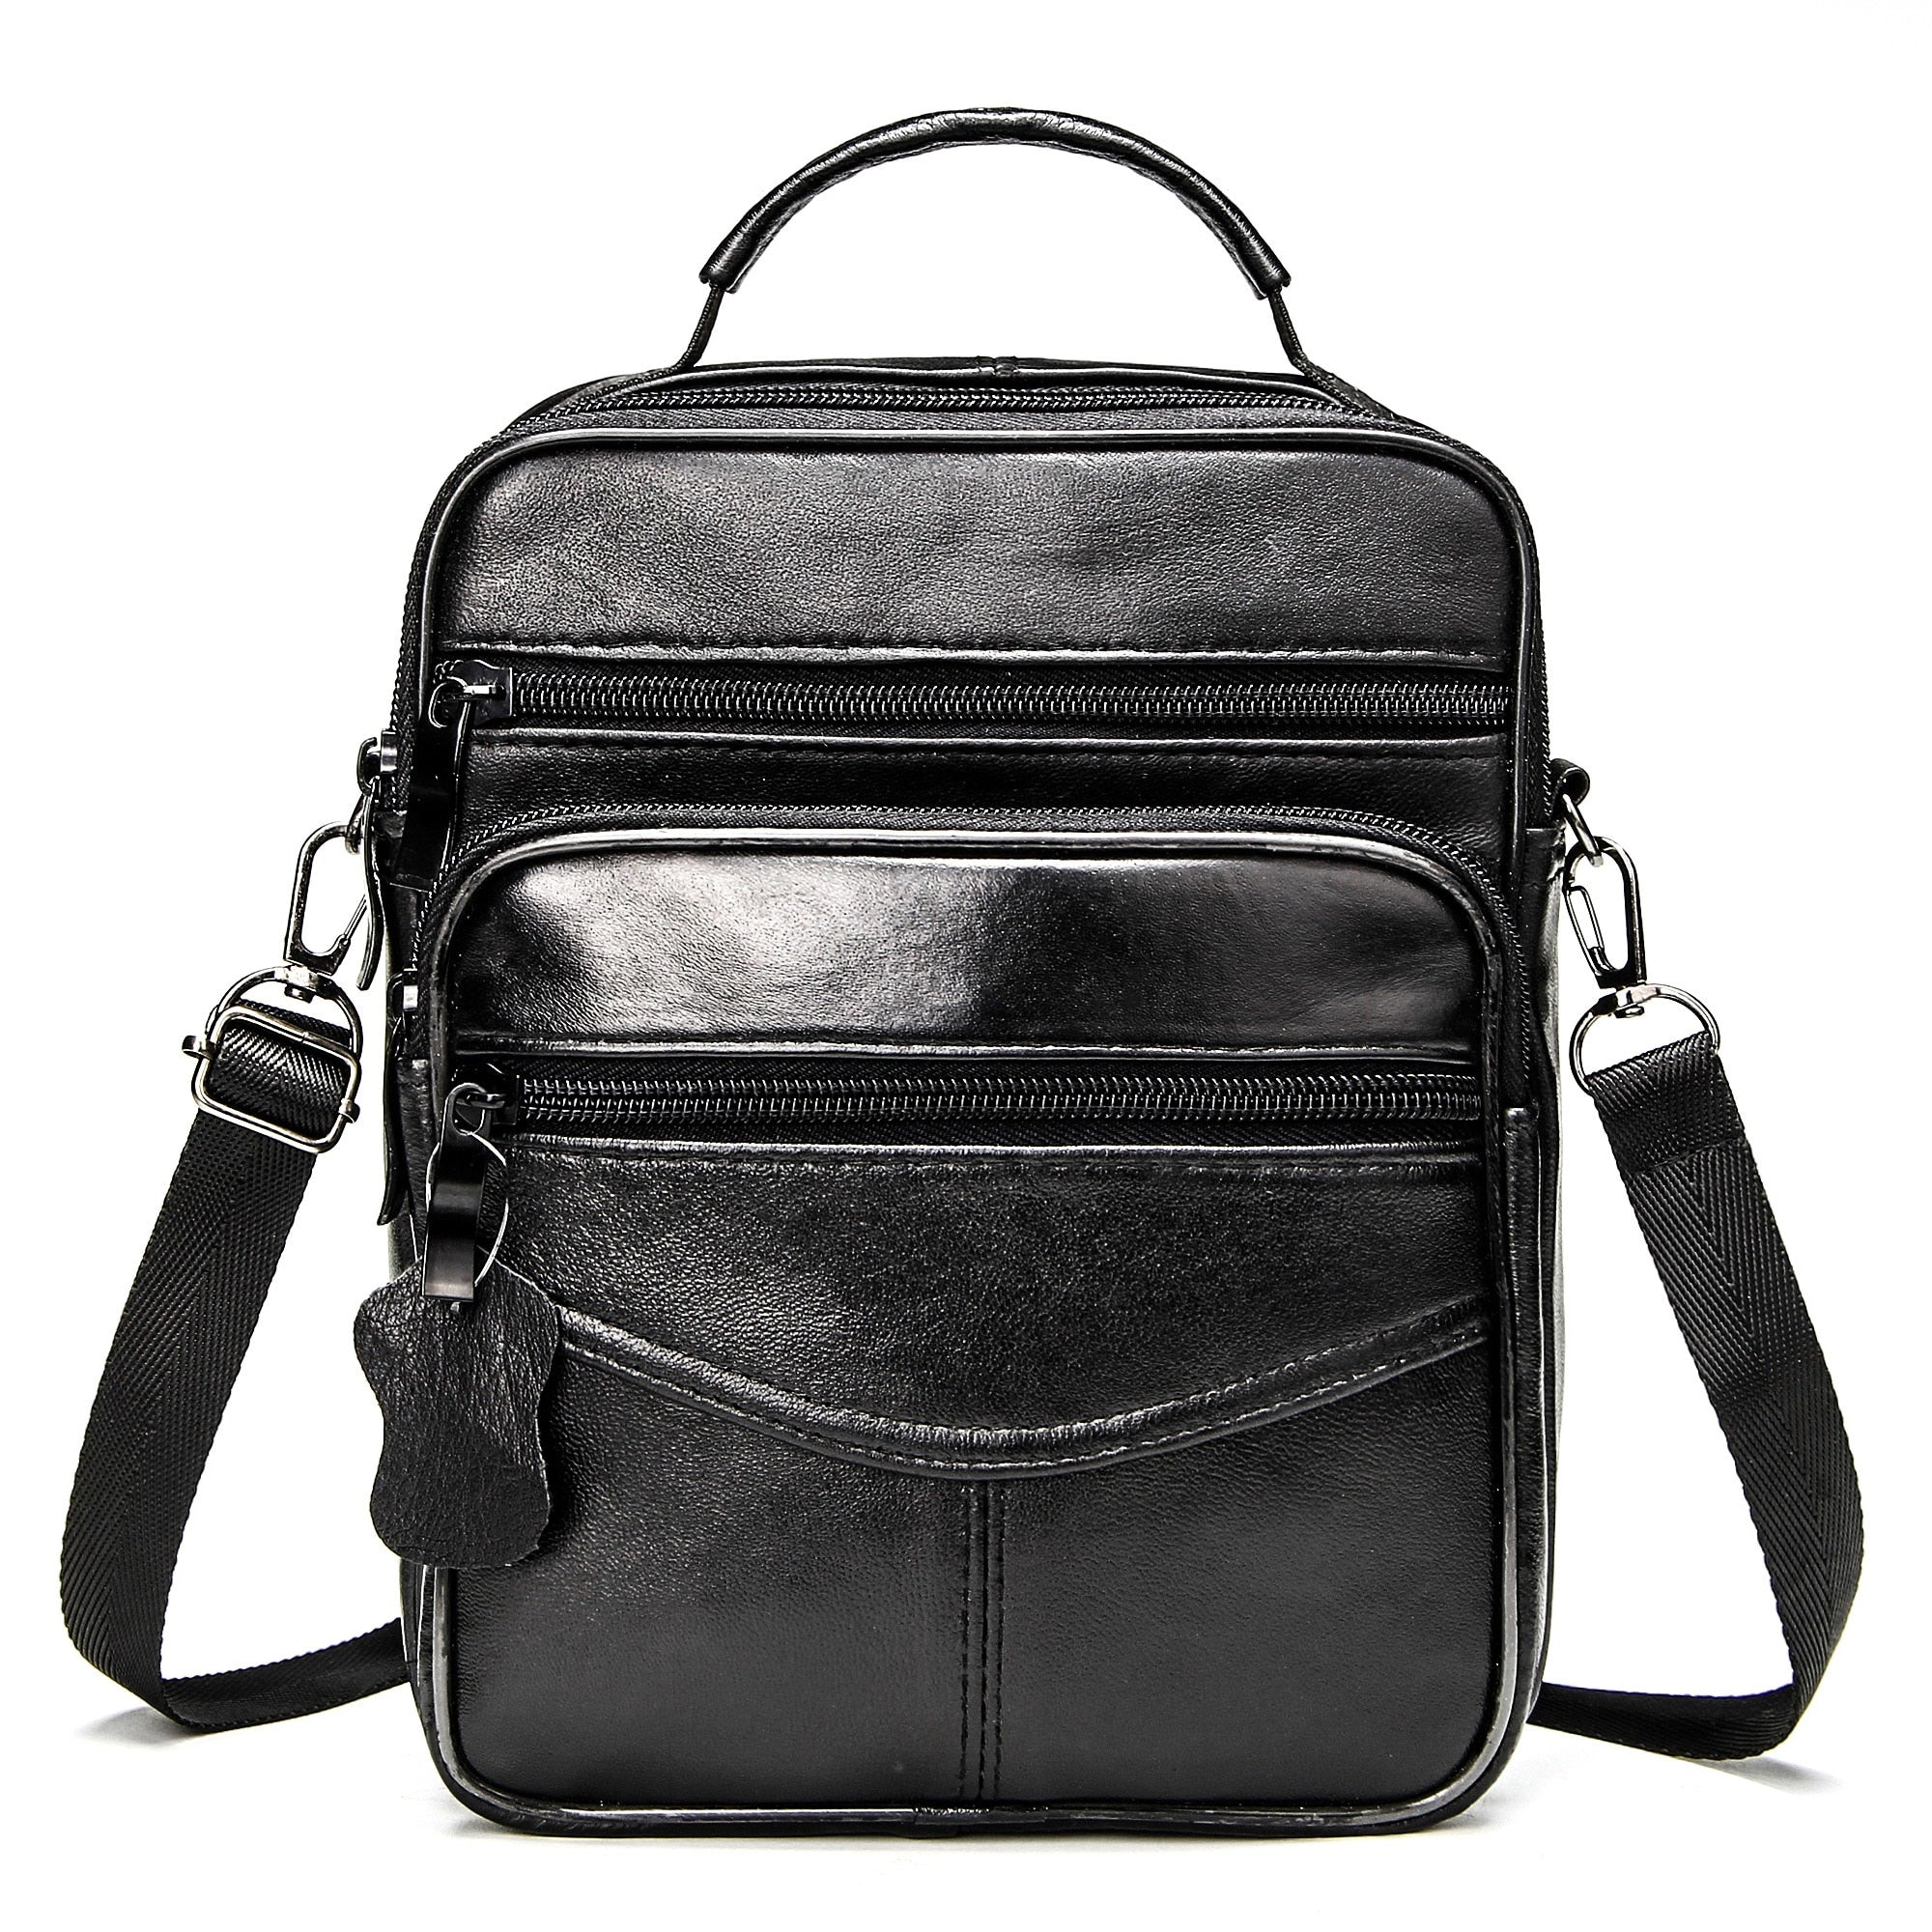 Leather Men's Handbags Casual Black Bags